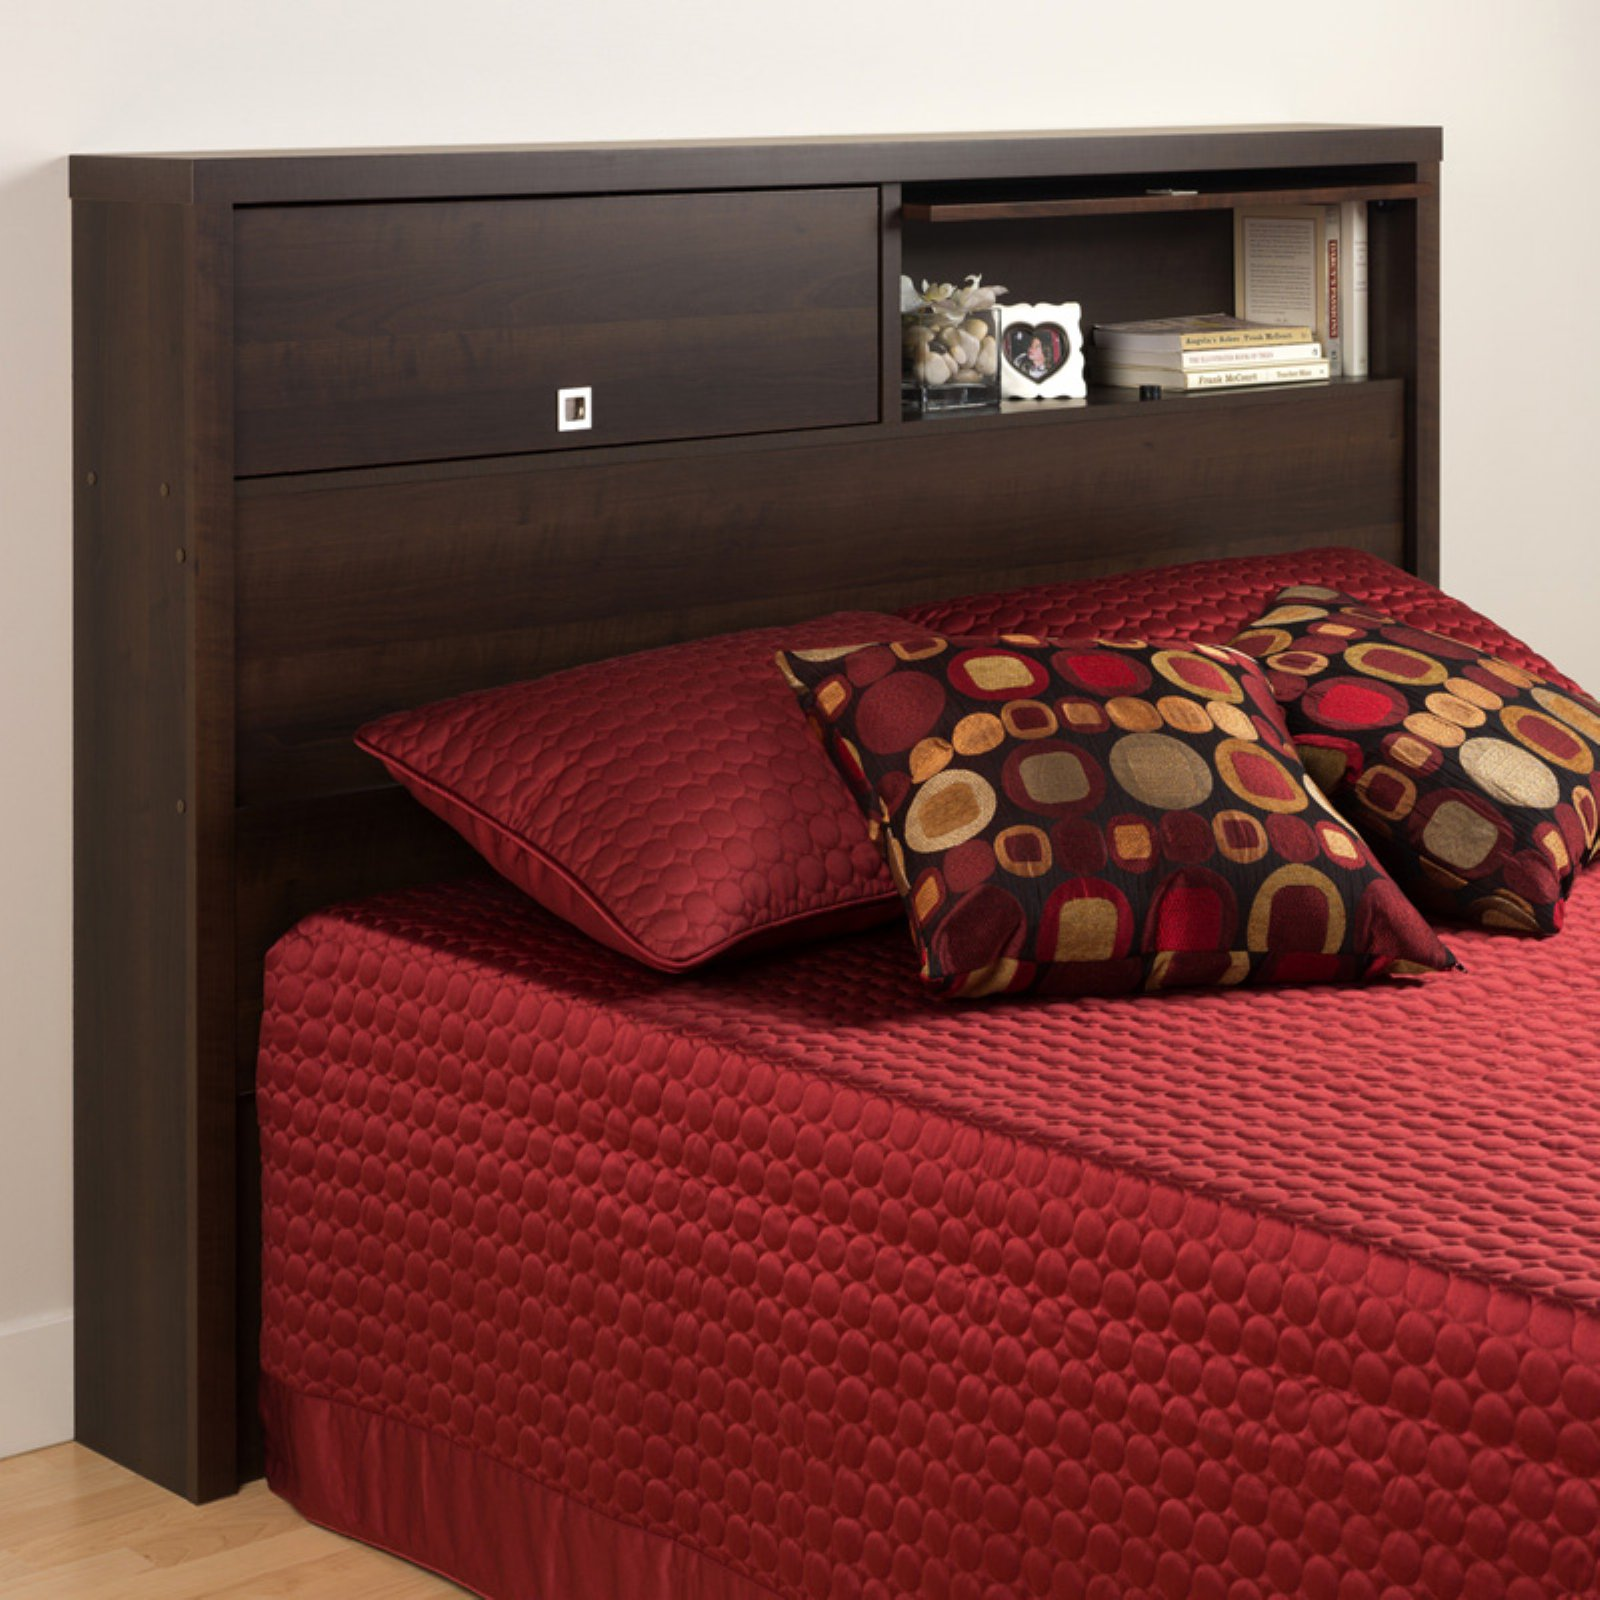 Espresso Series 9 Designer Full/Queen Headboard, 2-Door